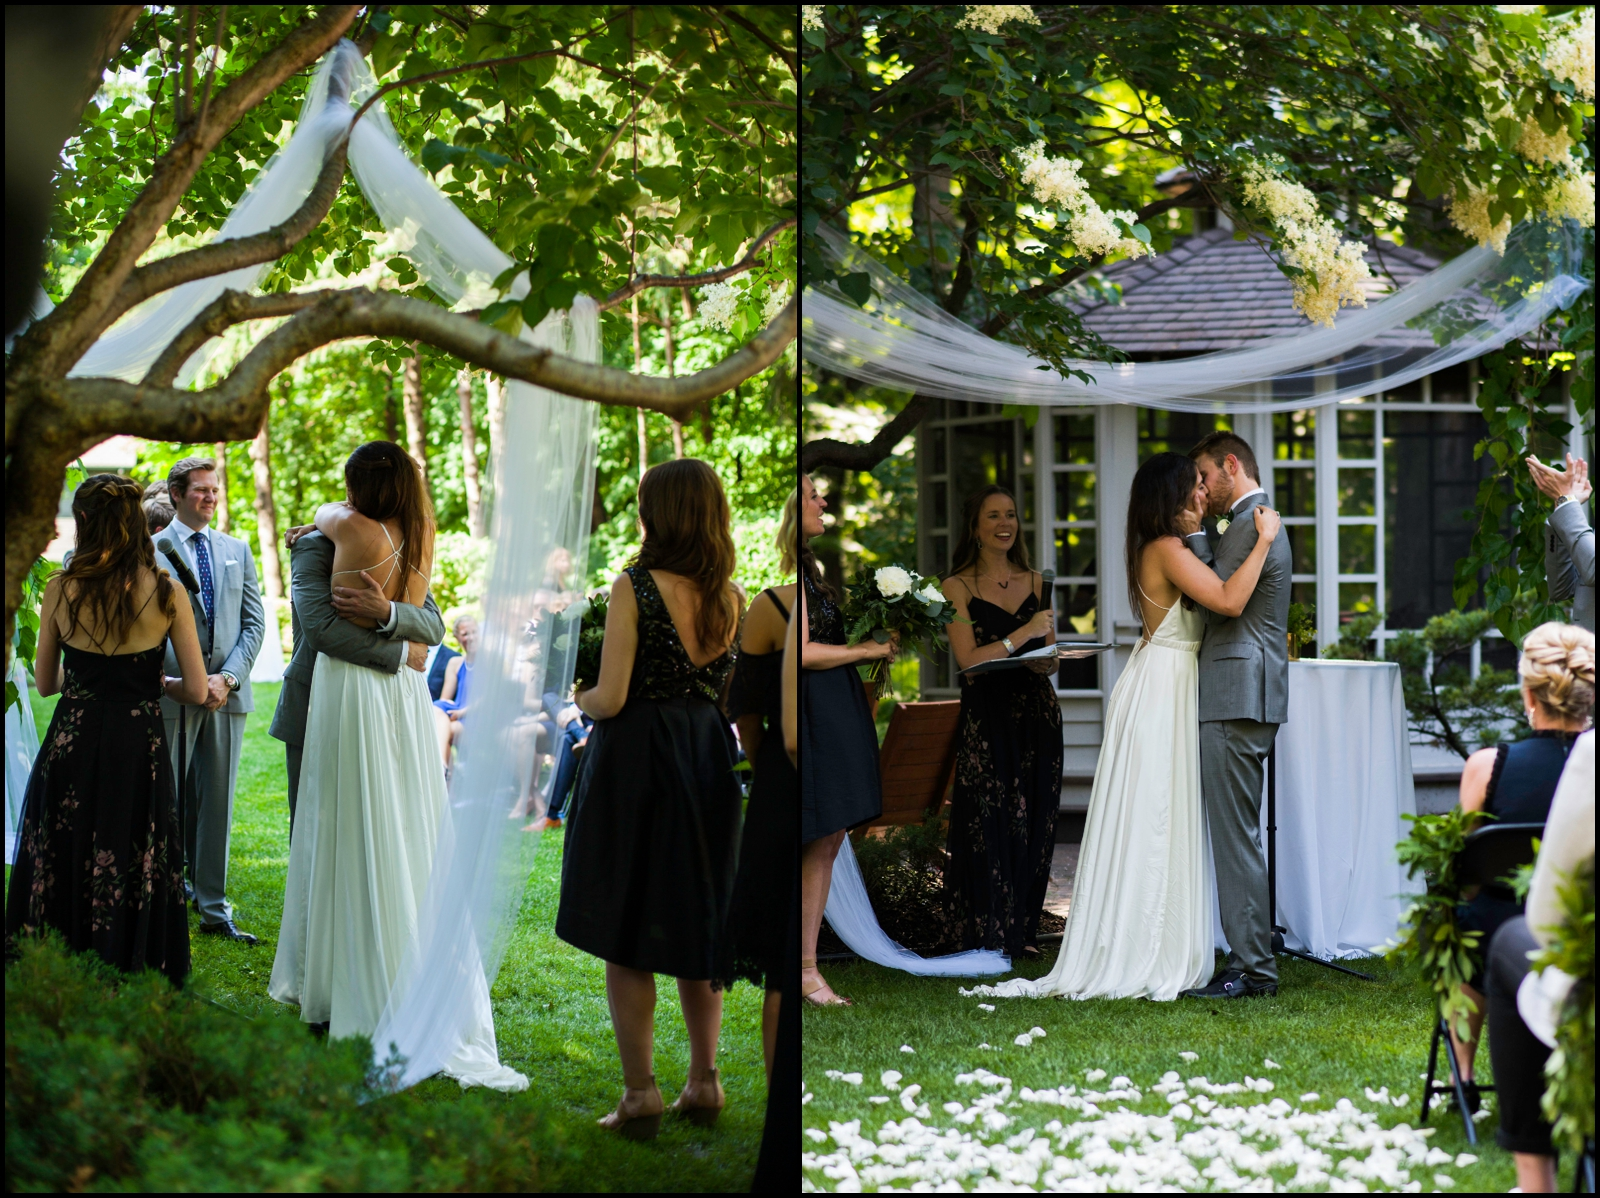 bride and groom at their outdoor wedding ceremony